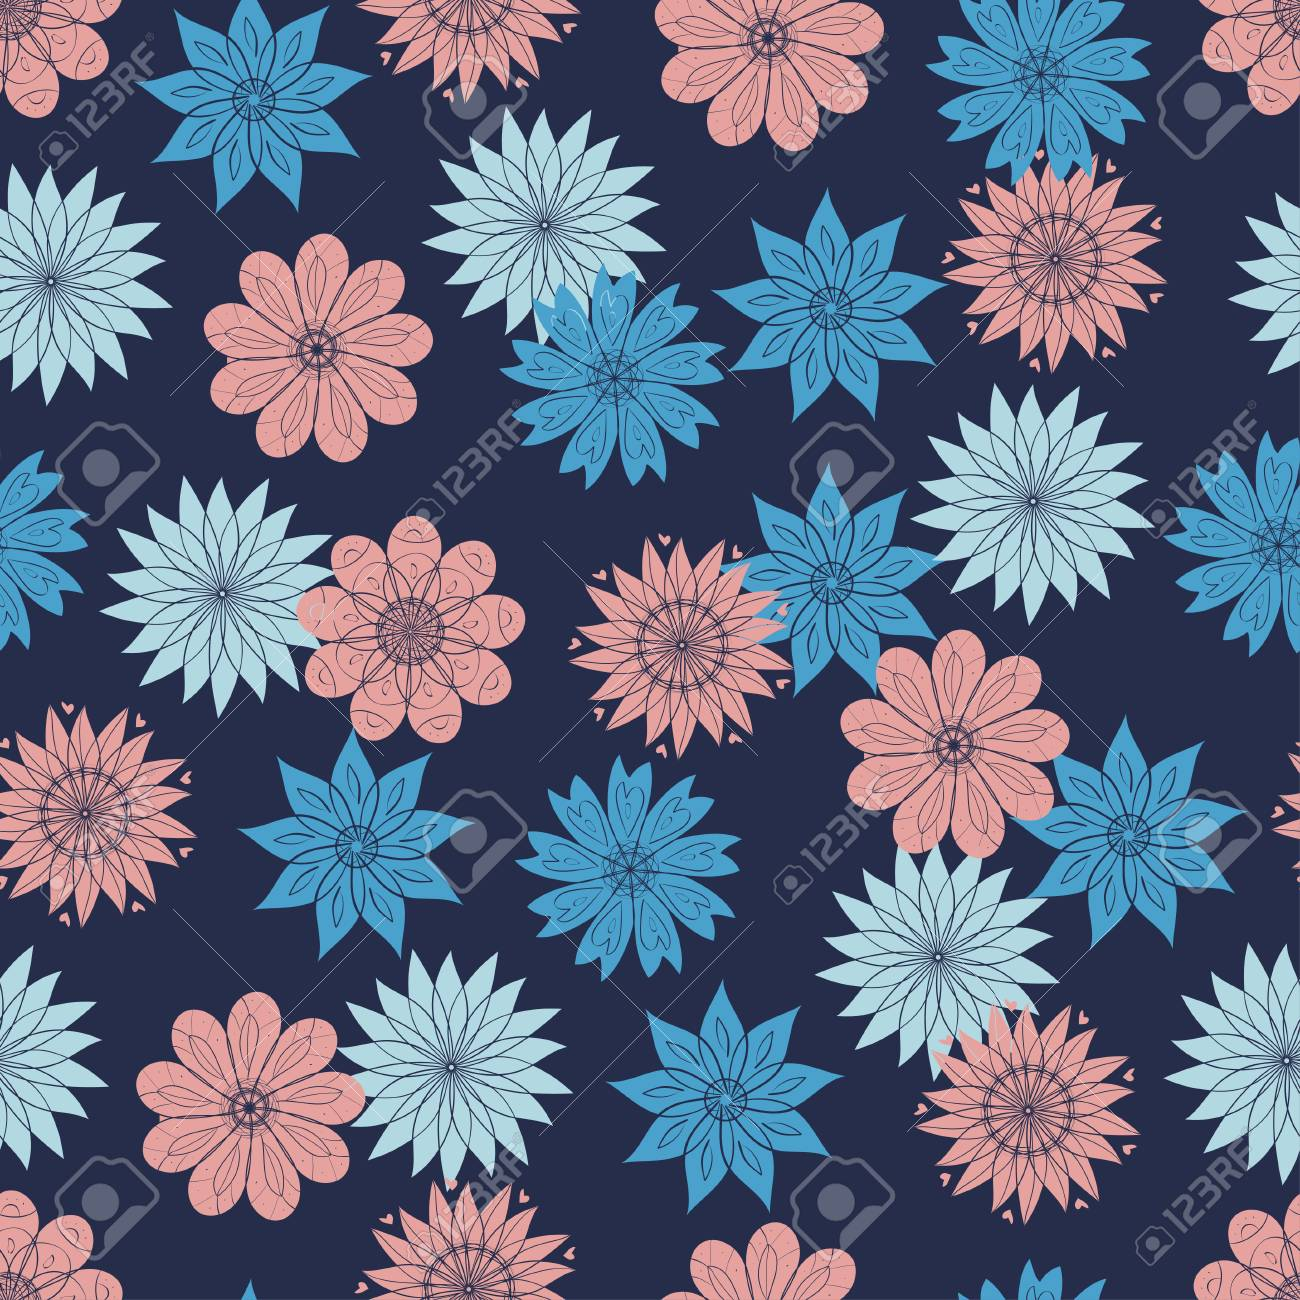 Flowers On A Blue Background Wallpaper Seamless Doodle Simple Royalty Free Cliparts Vectors And Stock Illustration Image 113562701